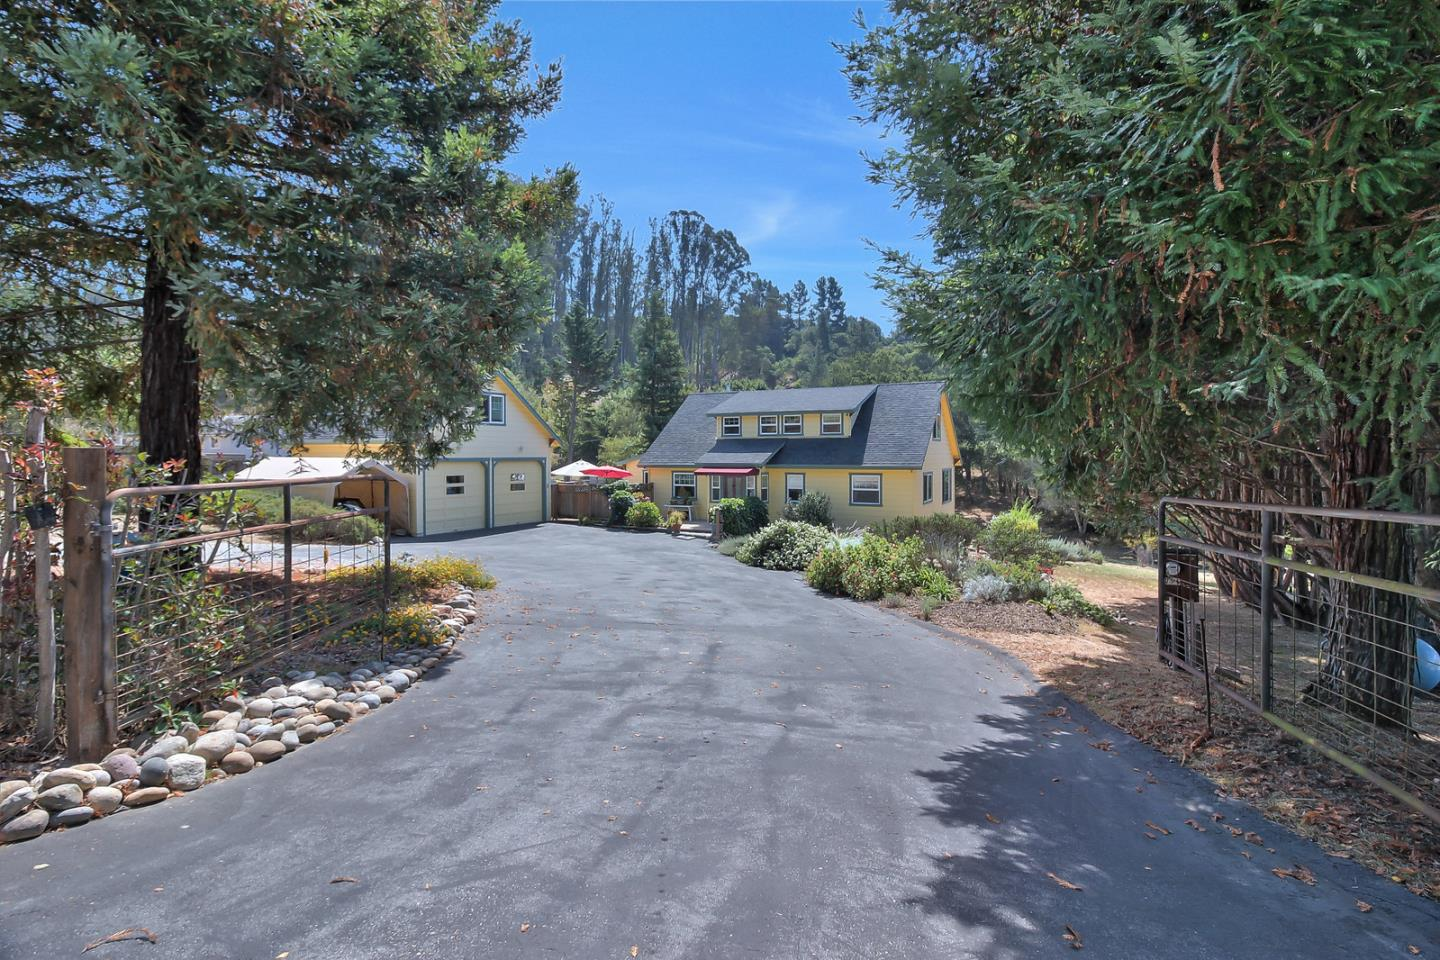 Single Family Home for Sale at 251 Snyder Avenue Aromas, California 95004 United States